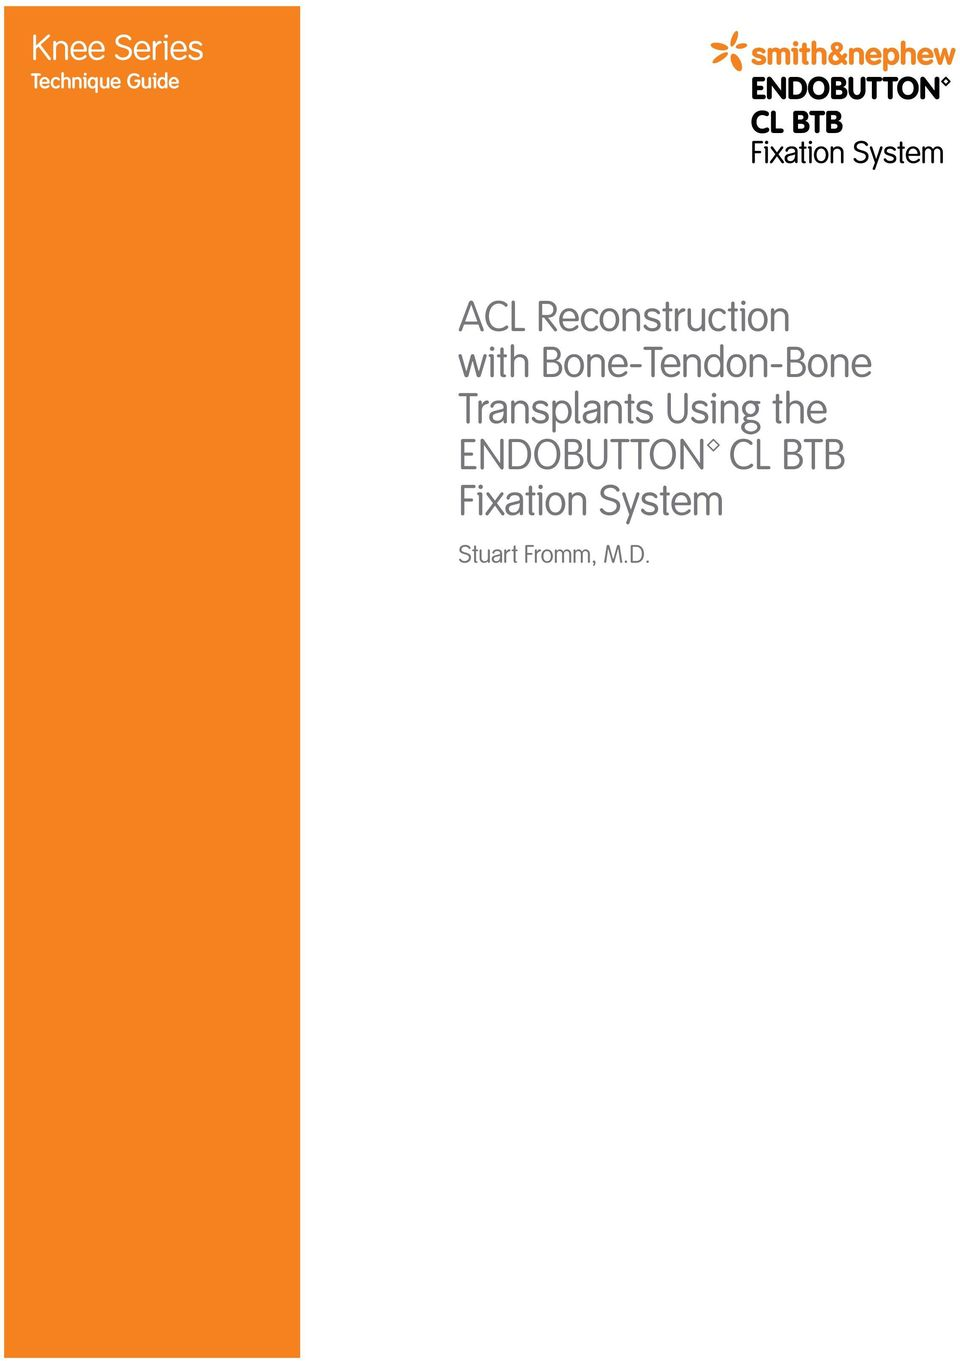 Bone-Tendon-Bone Transplants Using